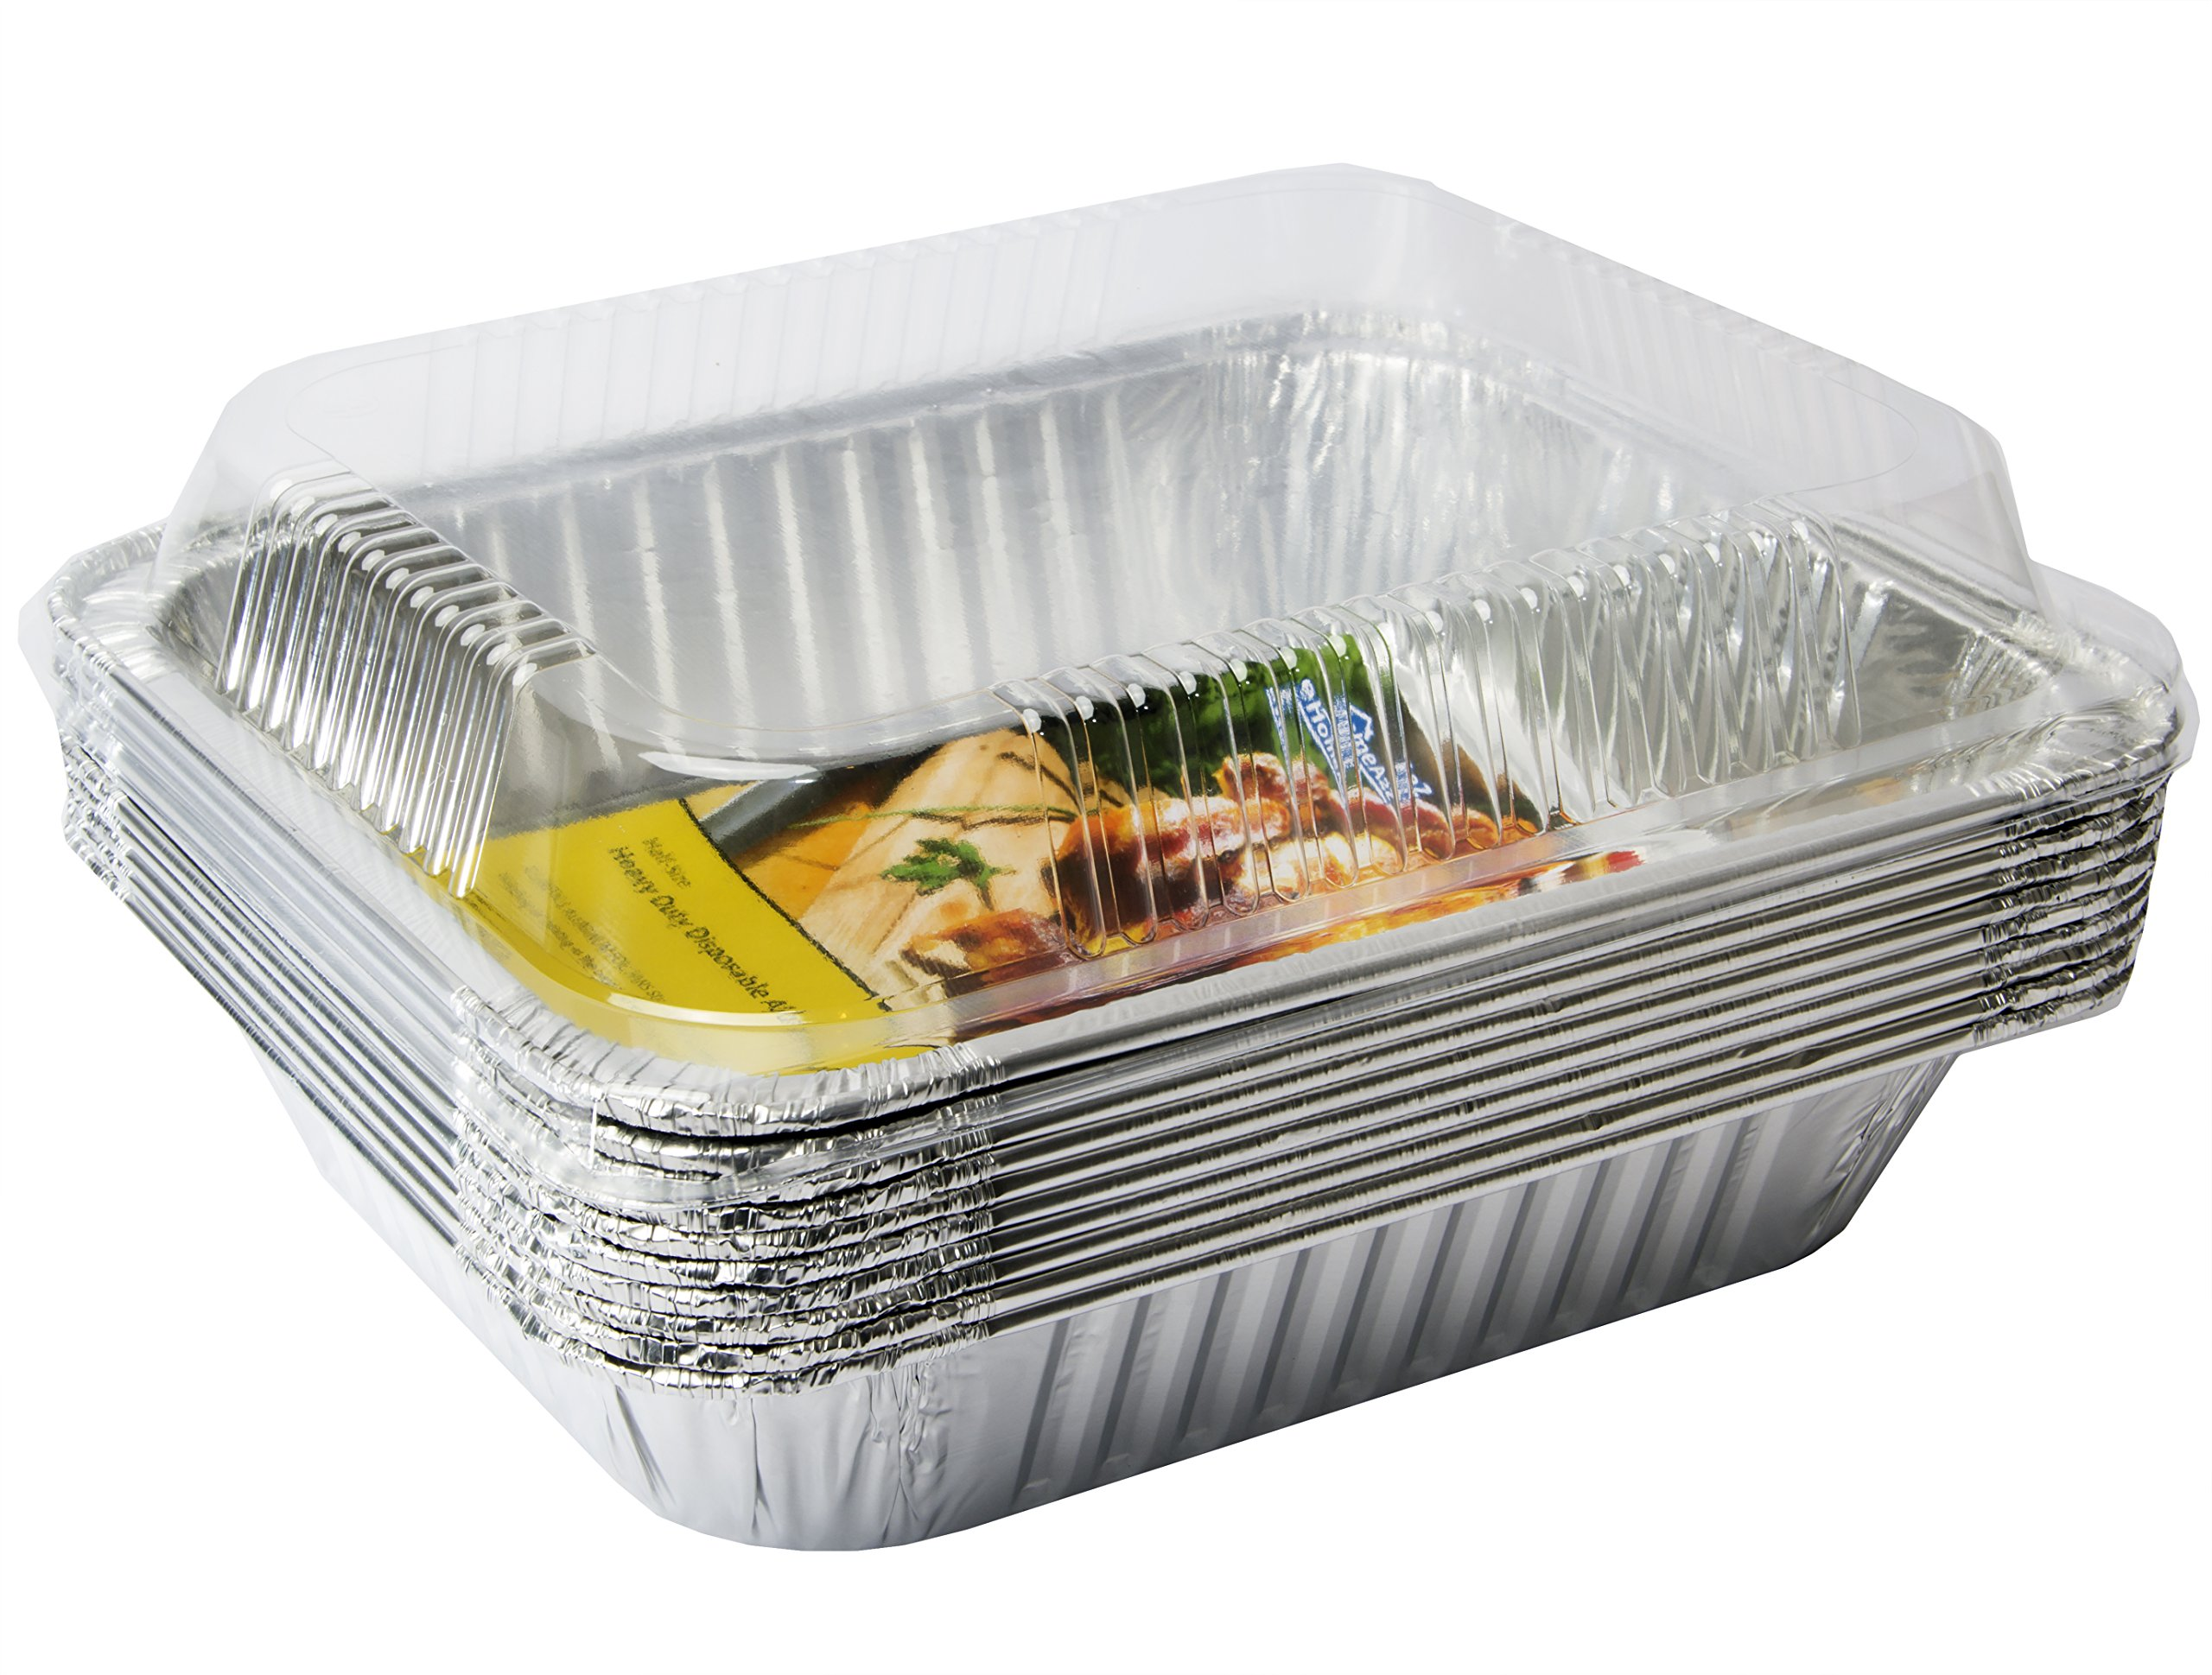 eHomeA2Z Half Size Deep Disposable Aluminum Foil Steam Table Pans With Dome Lids for Cooking, Roasting, Broiling, Baking - 13 x 10 x 3 (10, Half Size w/Dome Lids) by eHomeA2Z